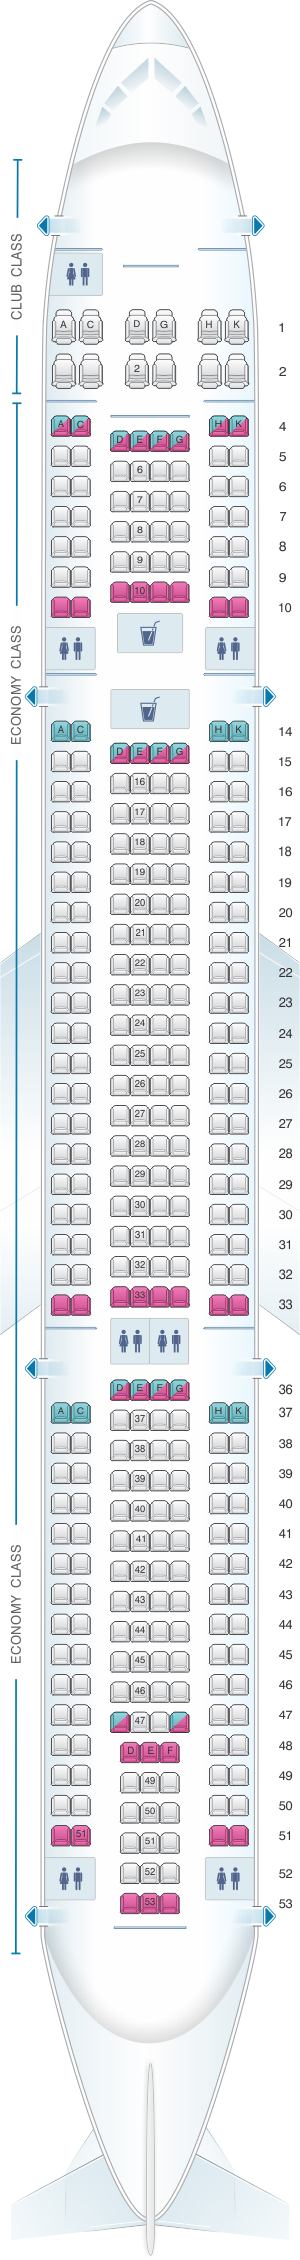 Seat map for Air Transat Airbus A330 300 346pax